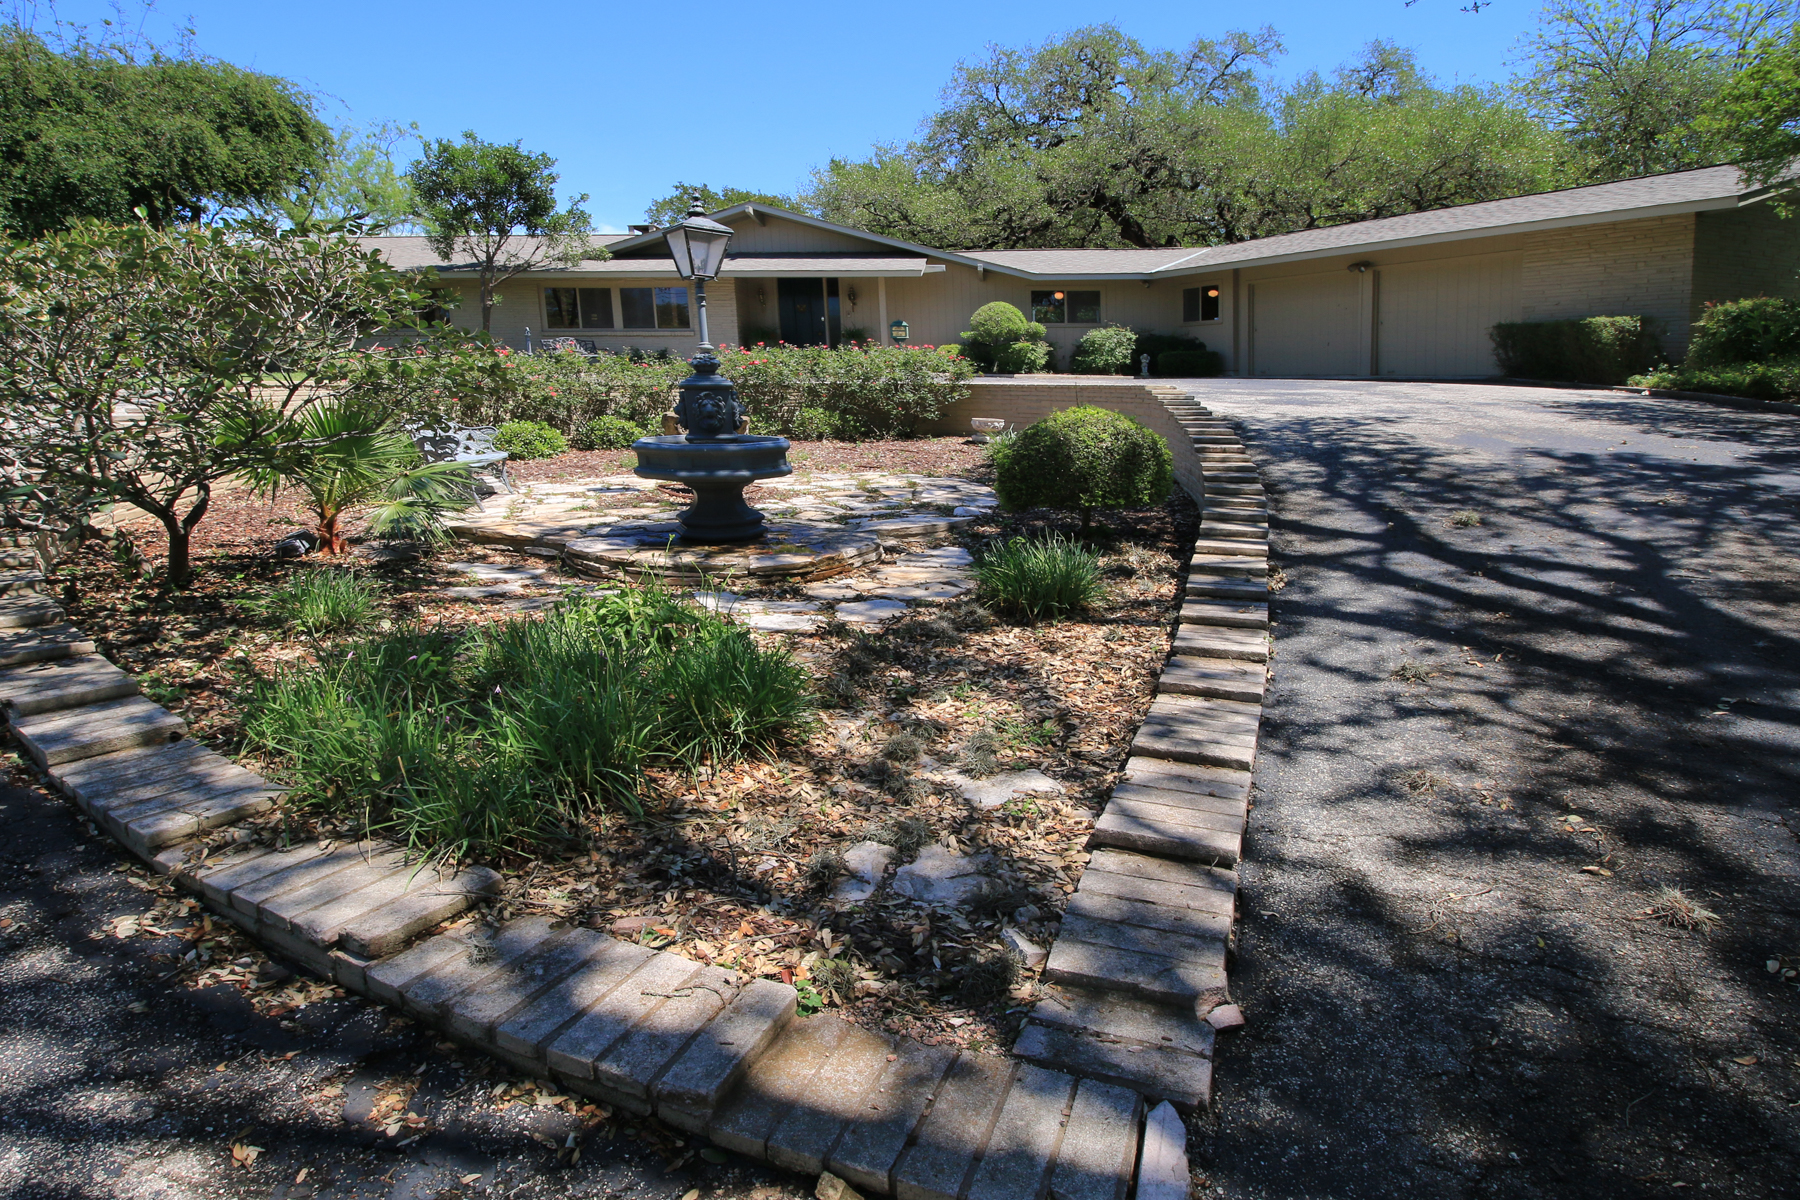 Single Family Home for Sale at Impressive Home in Northwood 2222 Nacogdoches Rd Northwood, San Antonio, Texas, 78209 United States